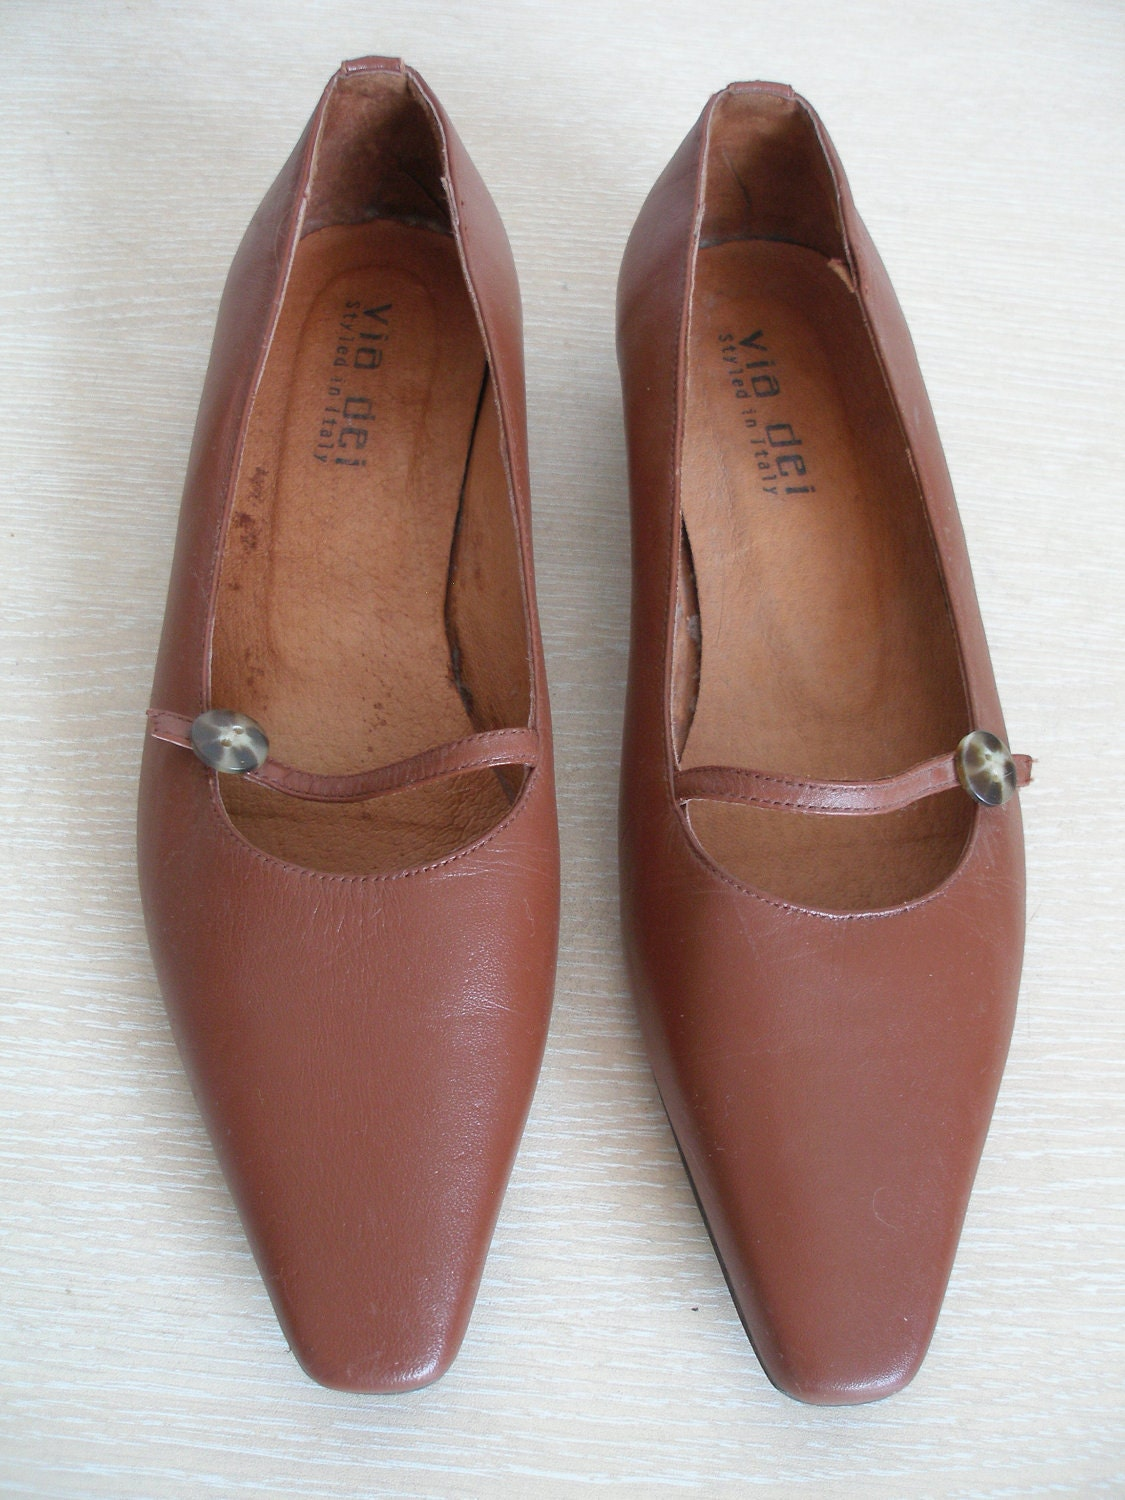 Find best value and selection for your SHOES, SIZE 38, US 8 search on eBay. World's leading marketplace.